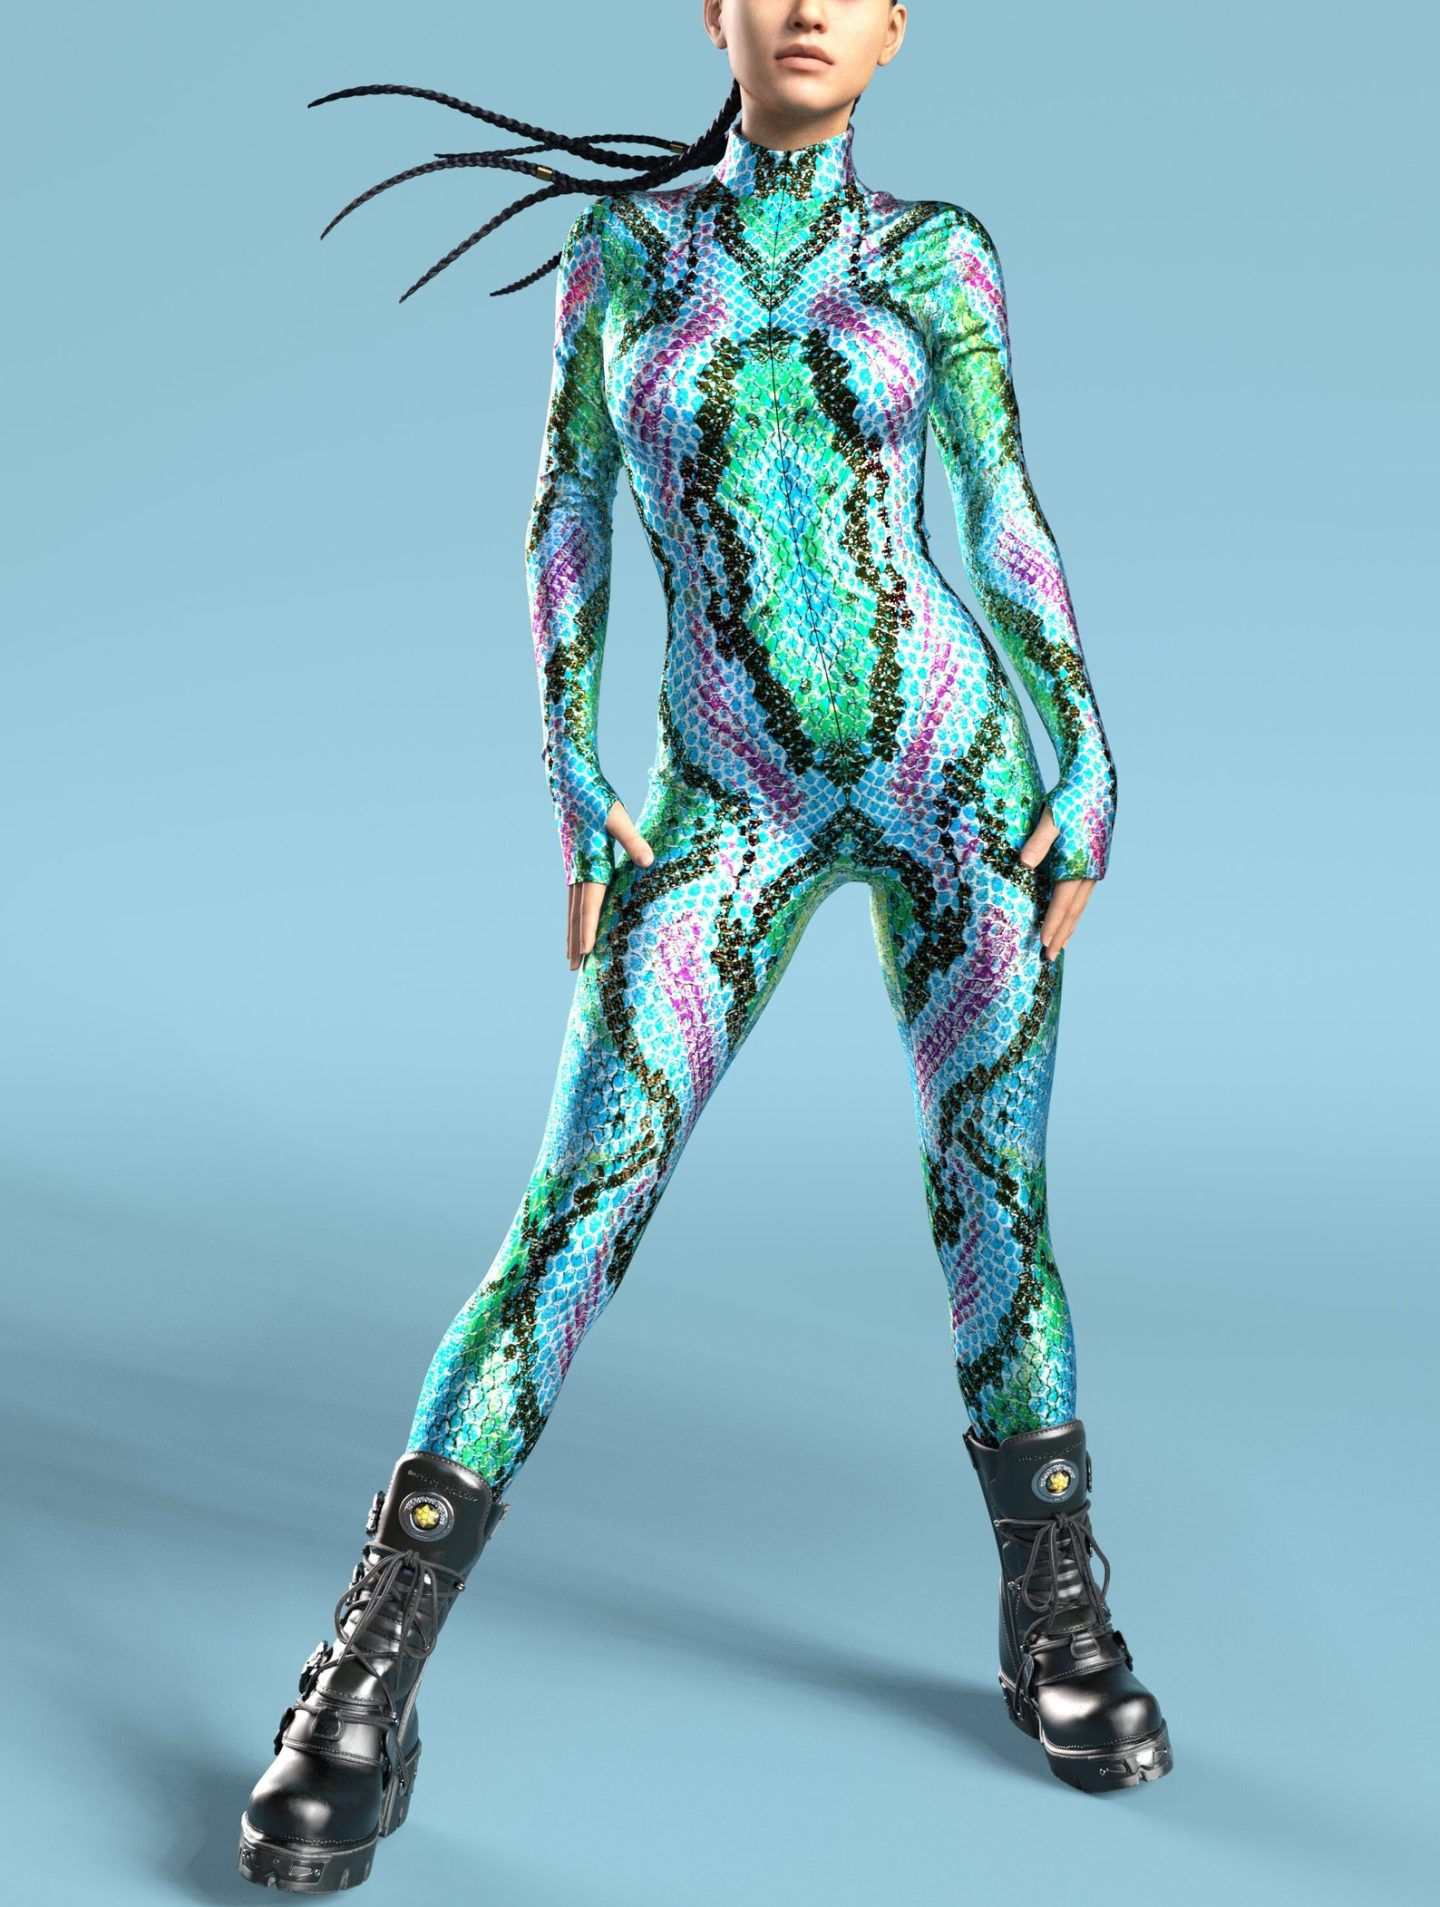 Hot holographic snake Halloween costume for women